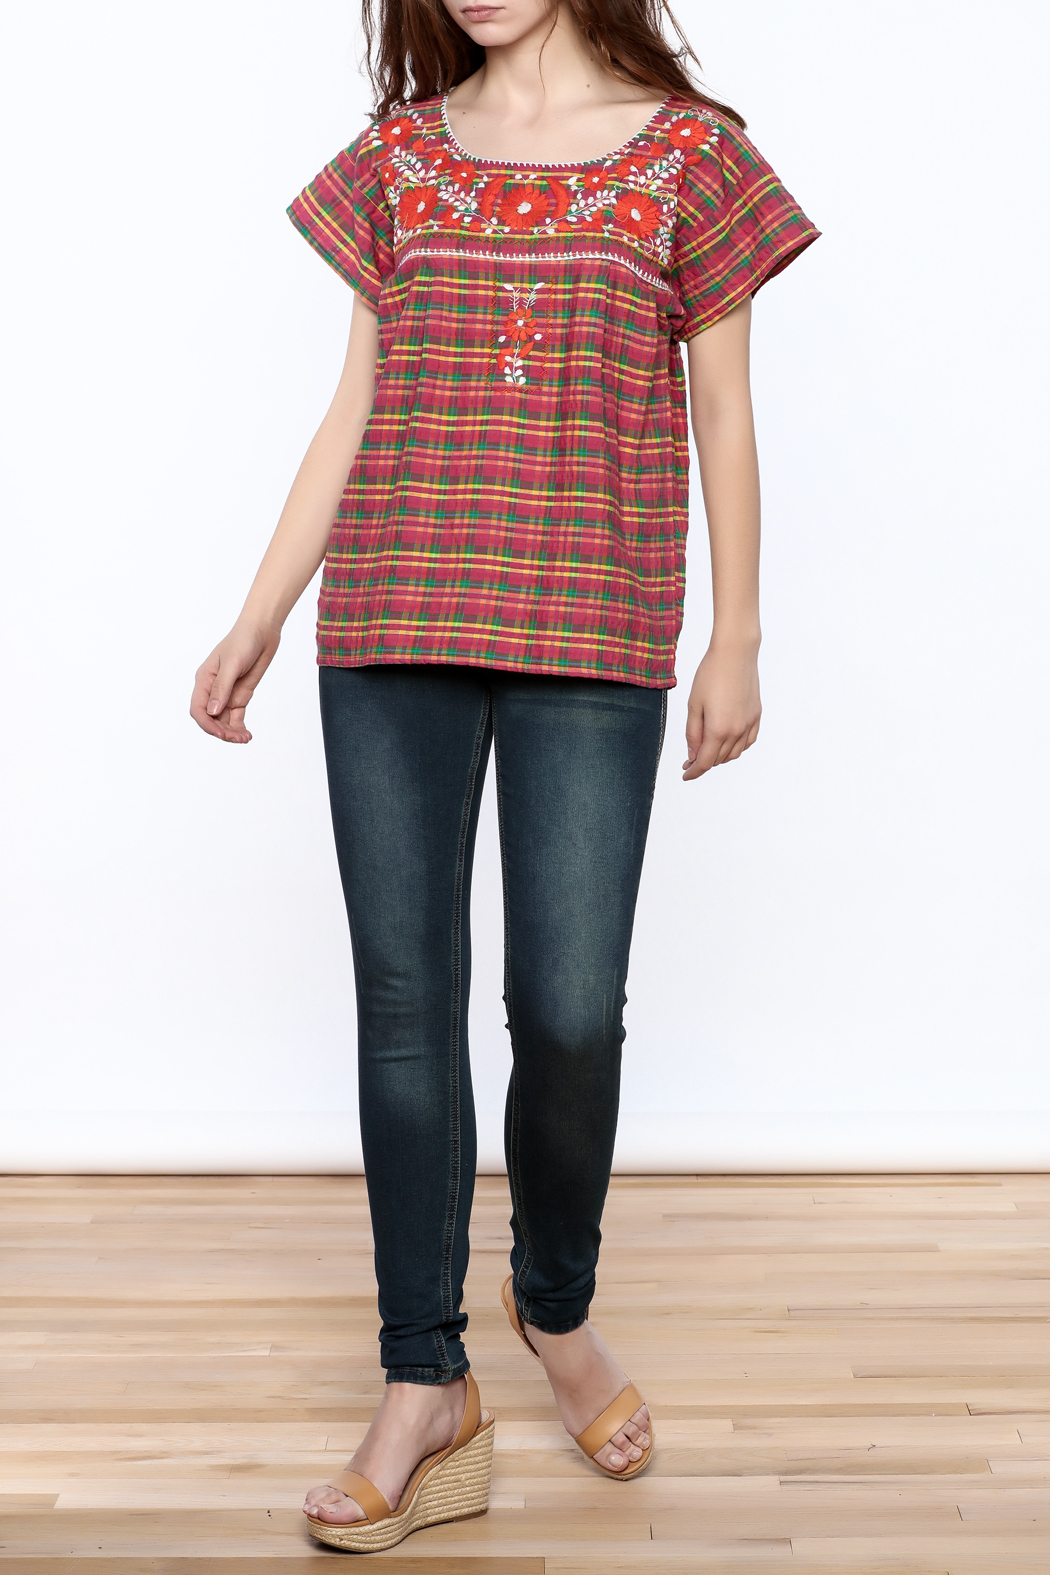 Nativa Plaid Xochitl Blouse - Front Full Image